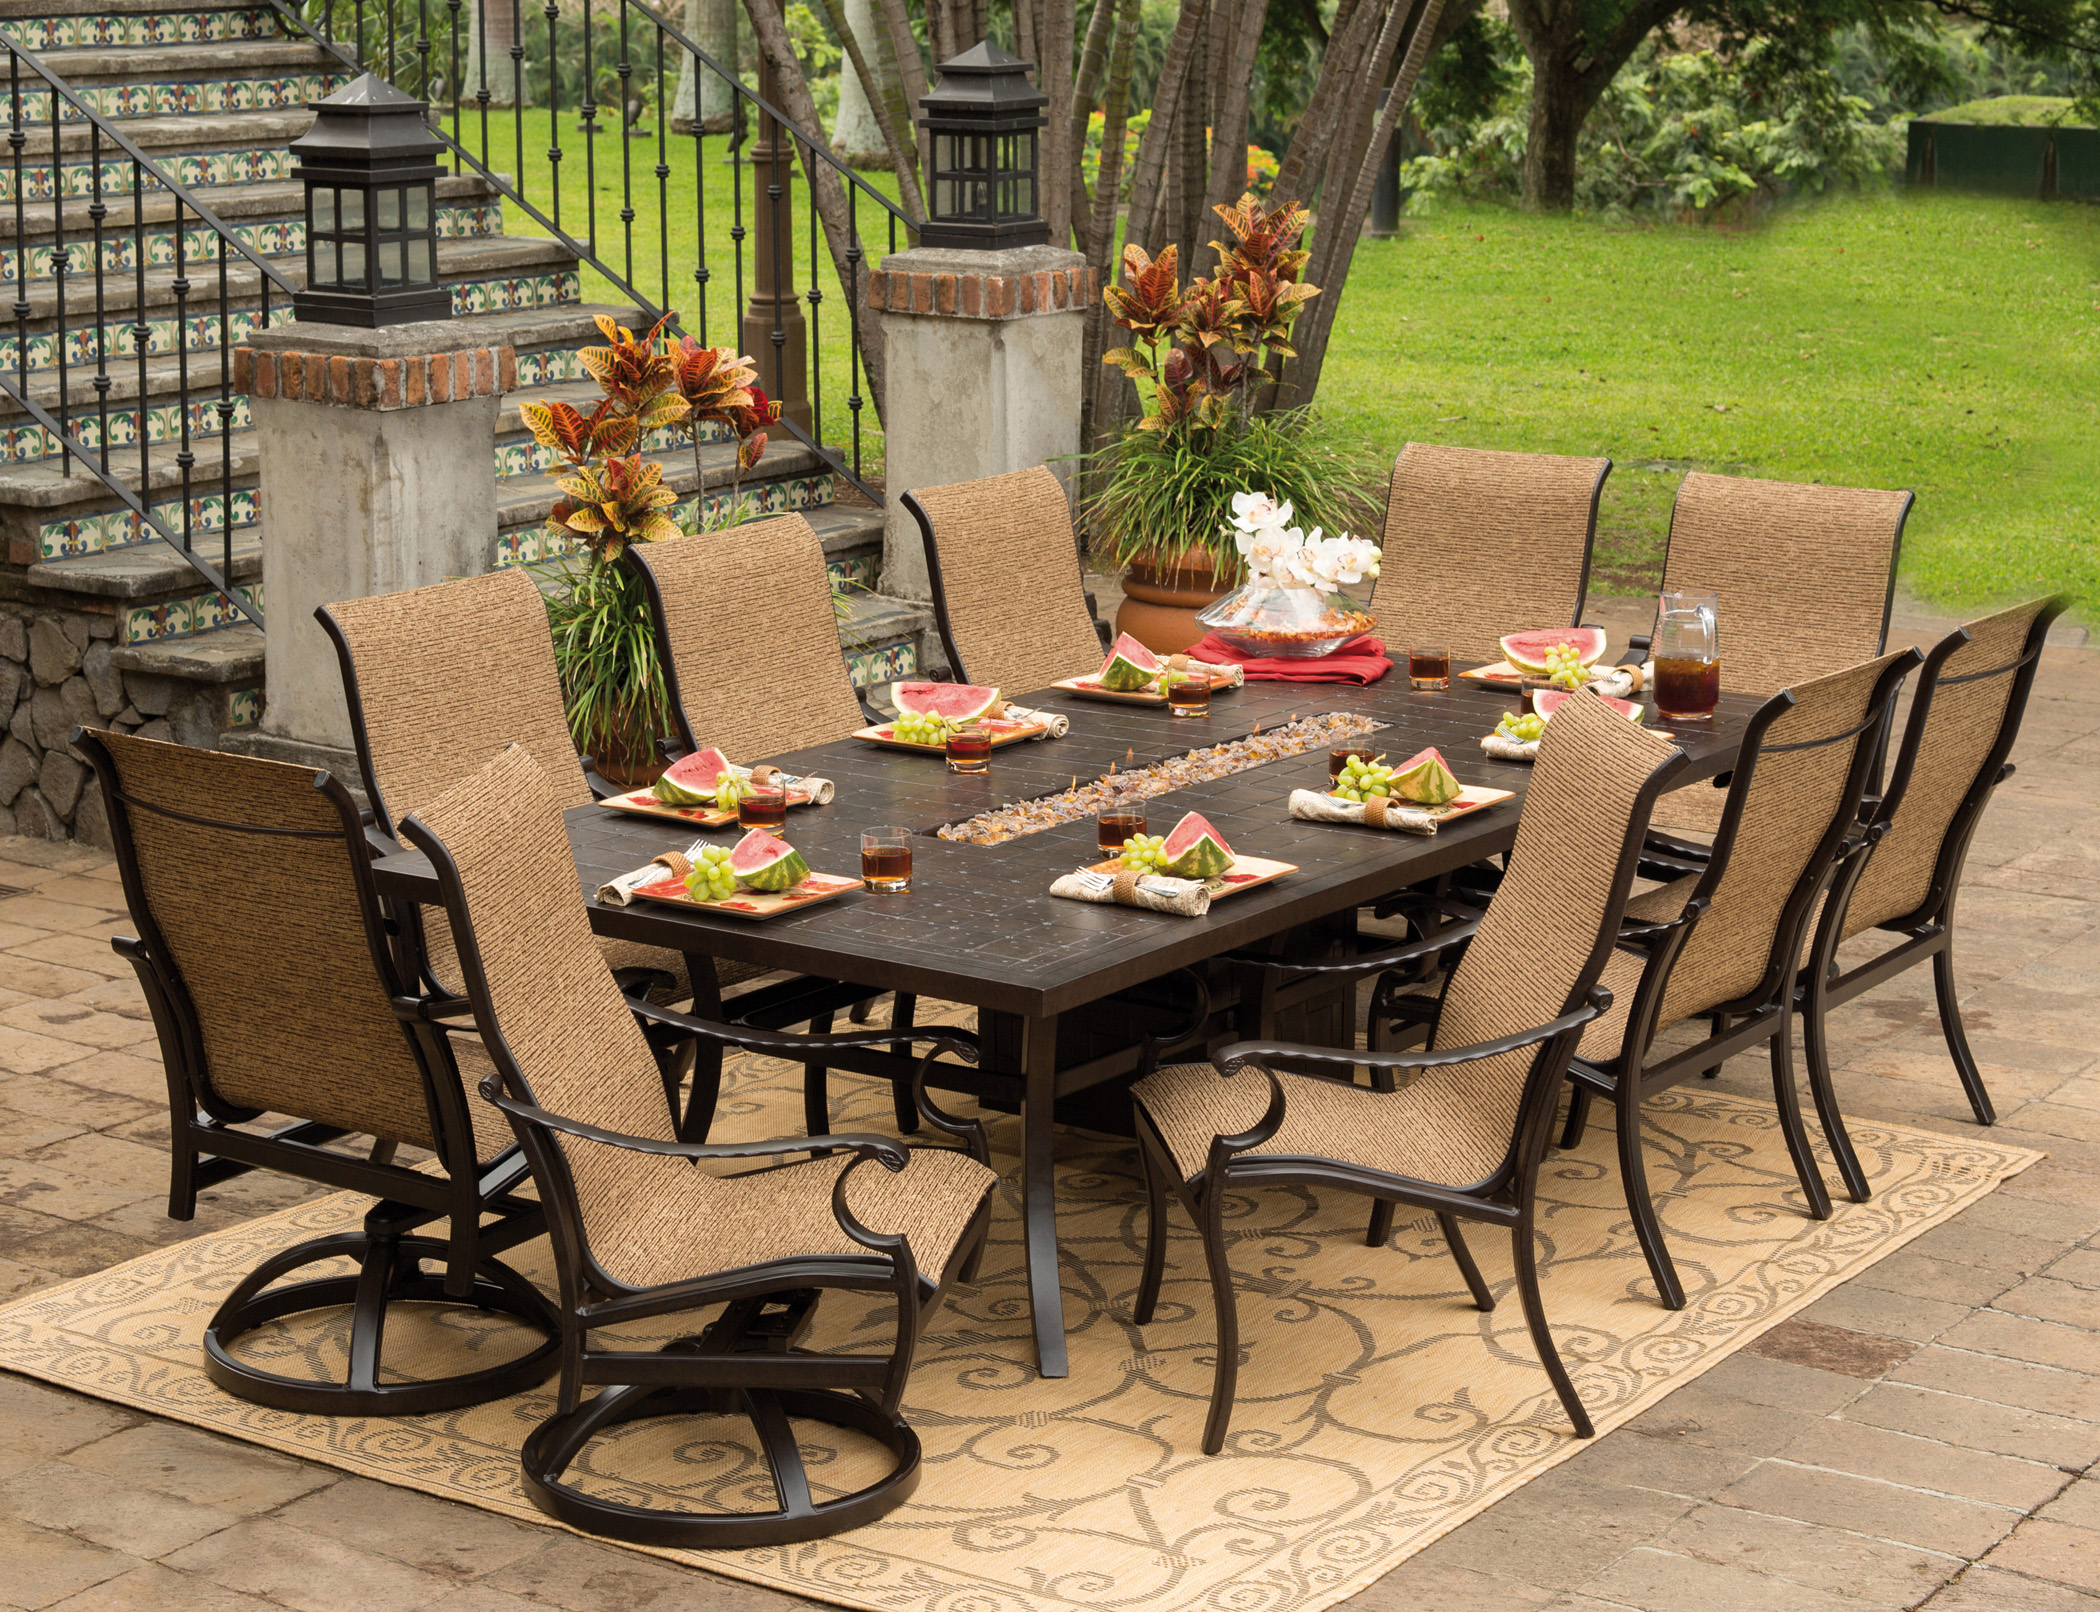 Benedetina: Outdoor Dining Table